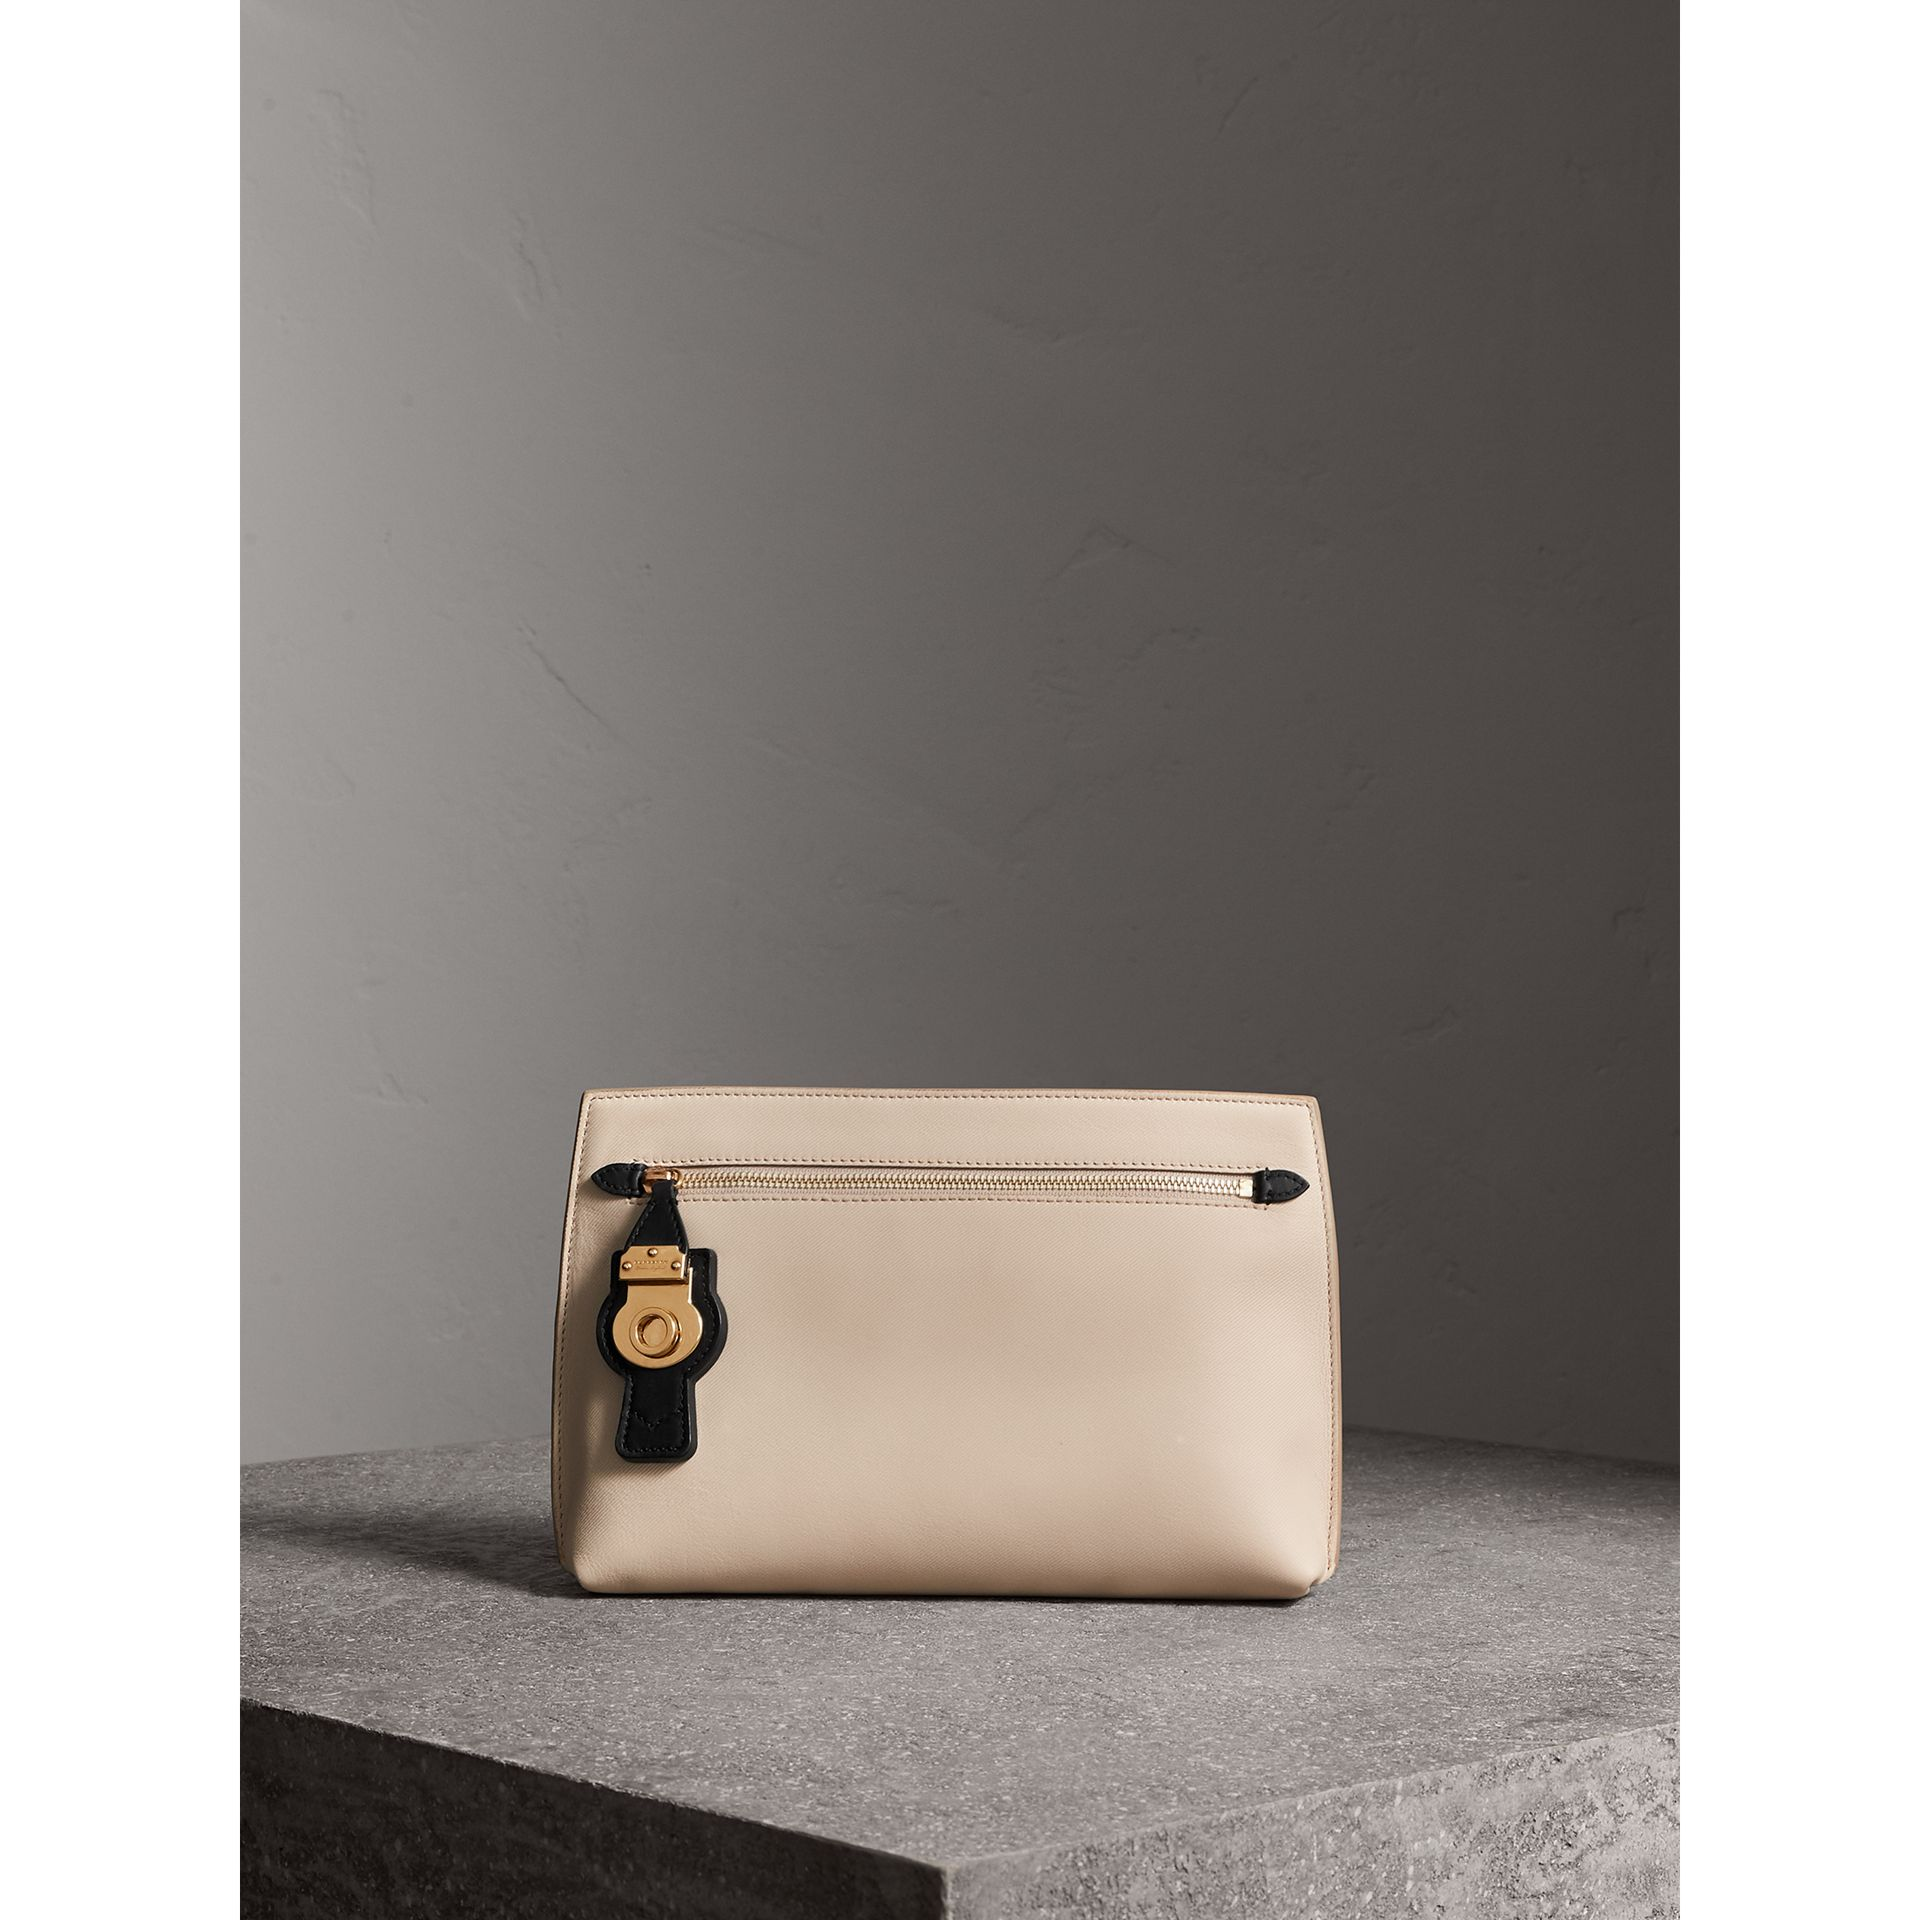 Two-tone Trench Leather Wristlet Pouch in Limestone/black - Women | Burberry Hong Kong - gallery image 1